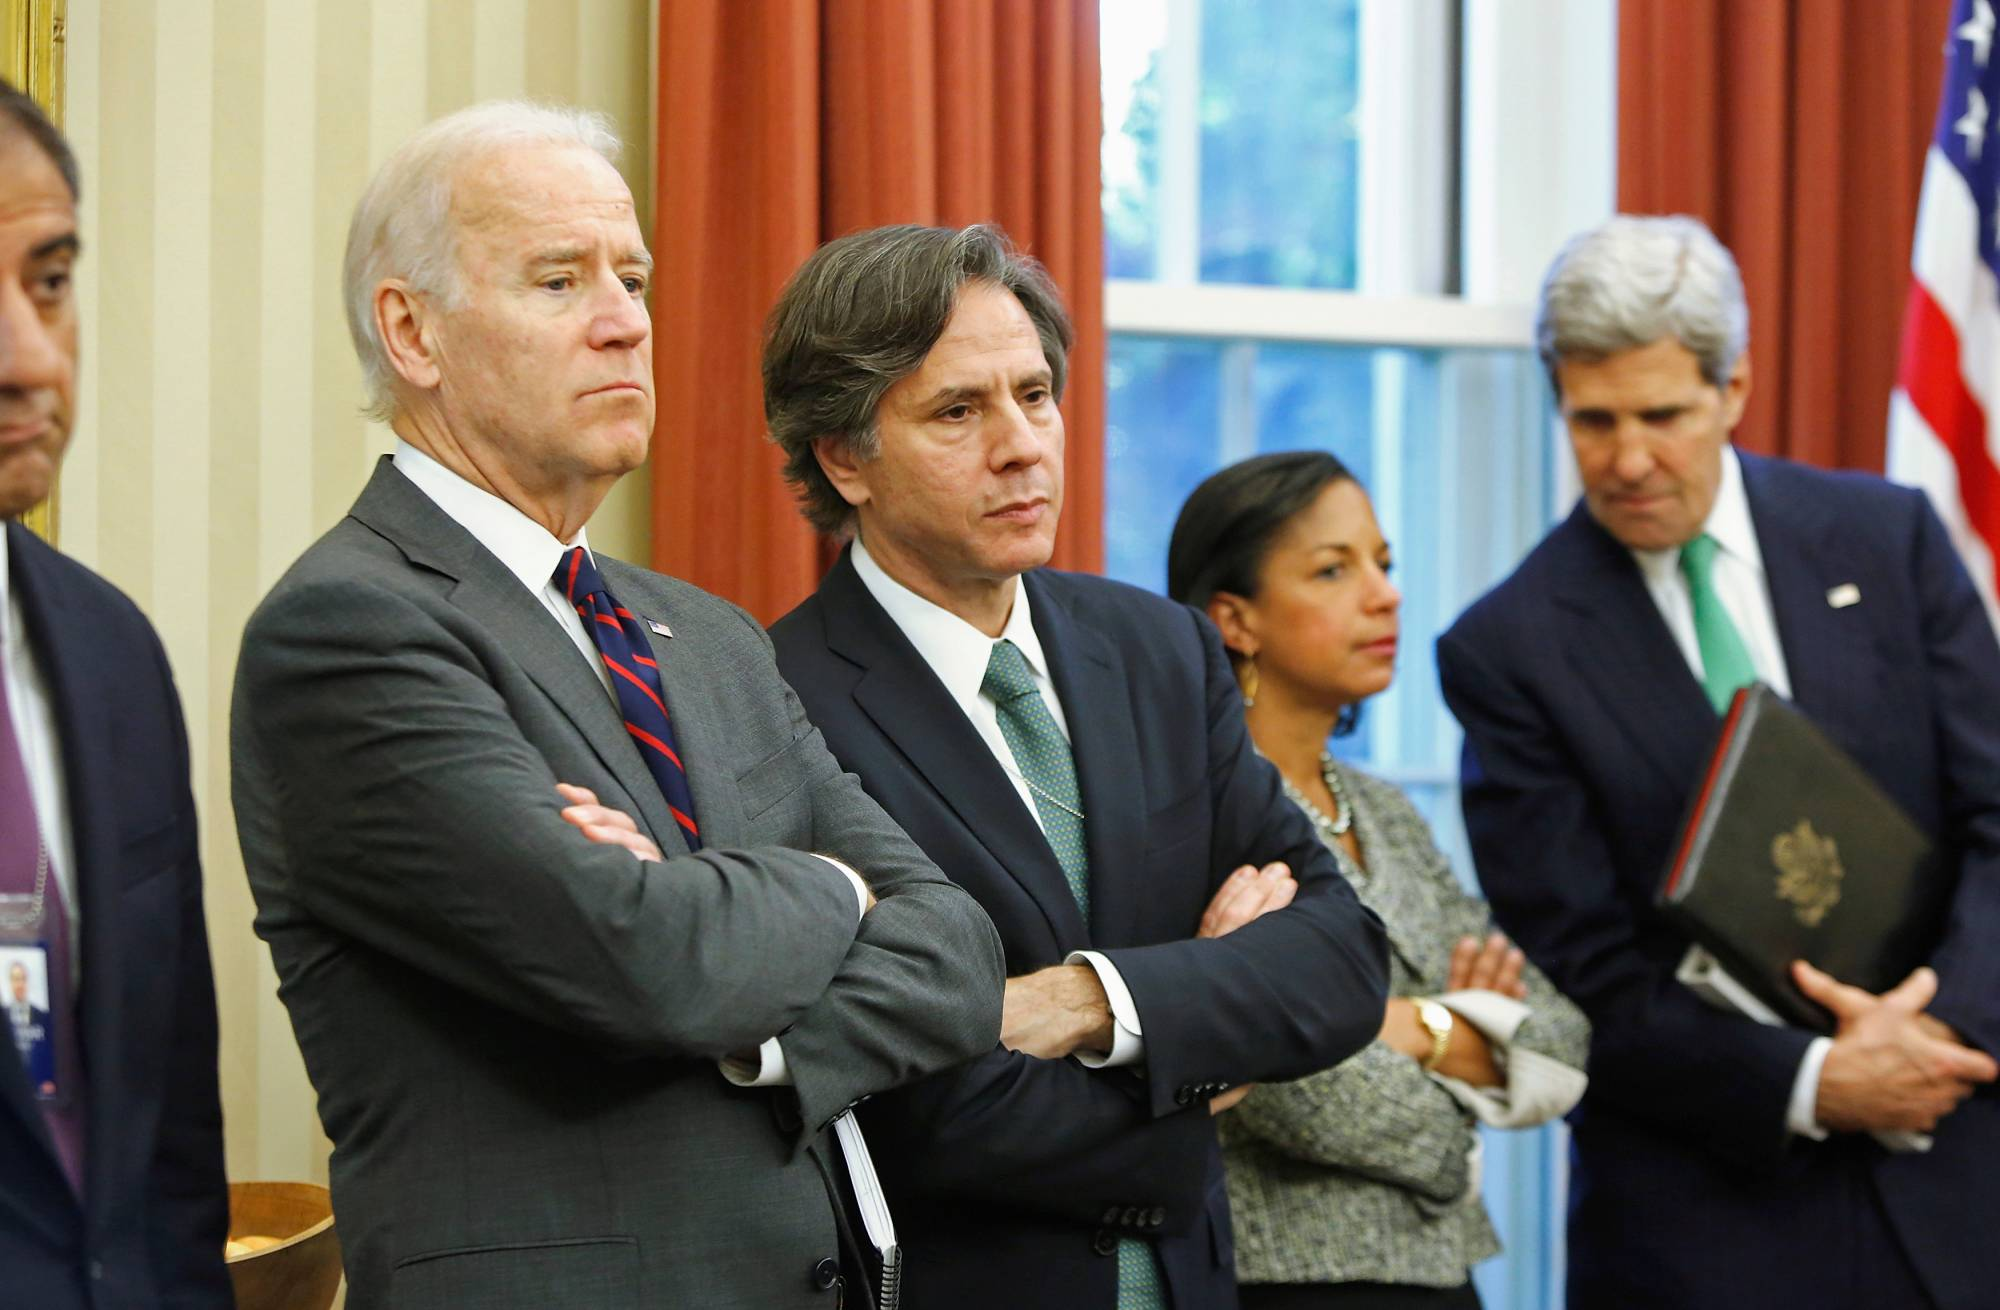 U.S. Vice President Joe Biden stands next to deputy national security adviser Antony Blinken during an event at the White House in November 2013. | REUTERS